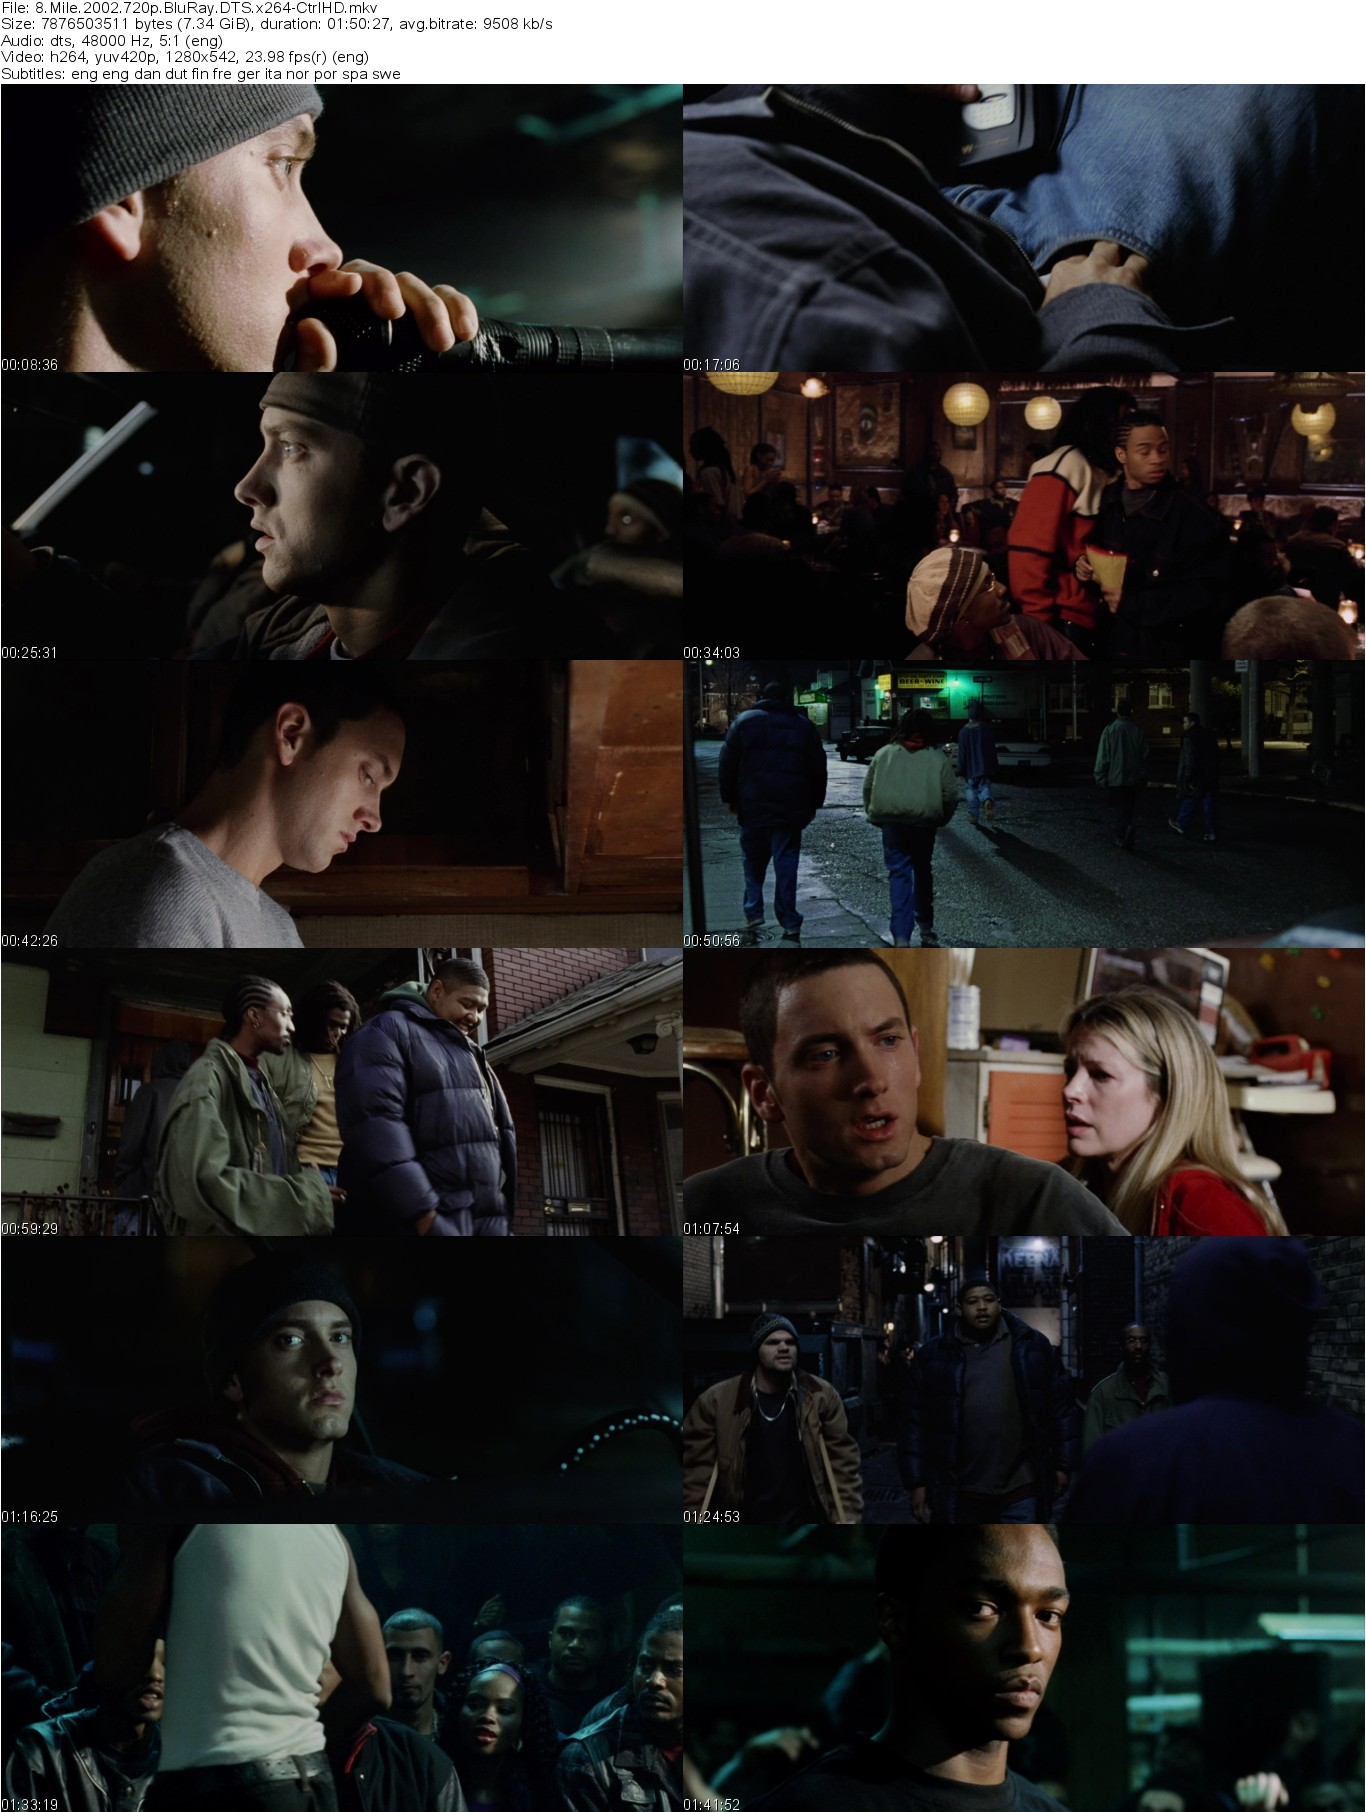 8 Mile 2002 720p Bluray Dts X264 Ctrlhd Releasehive